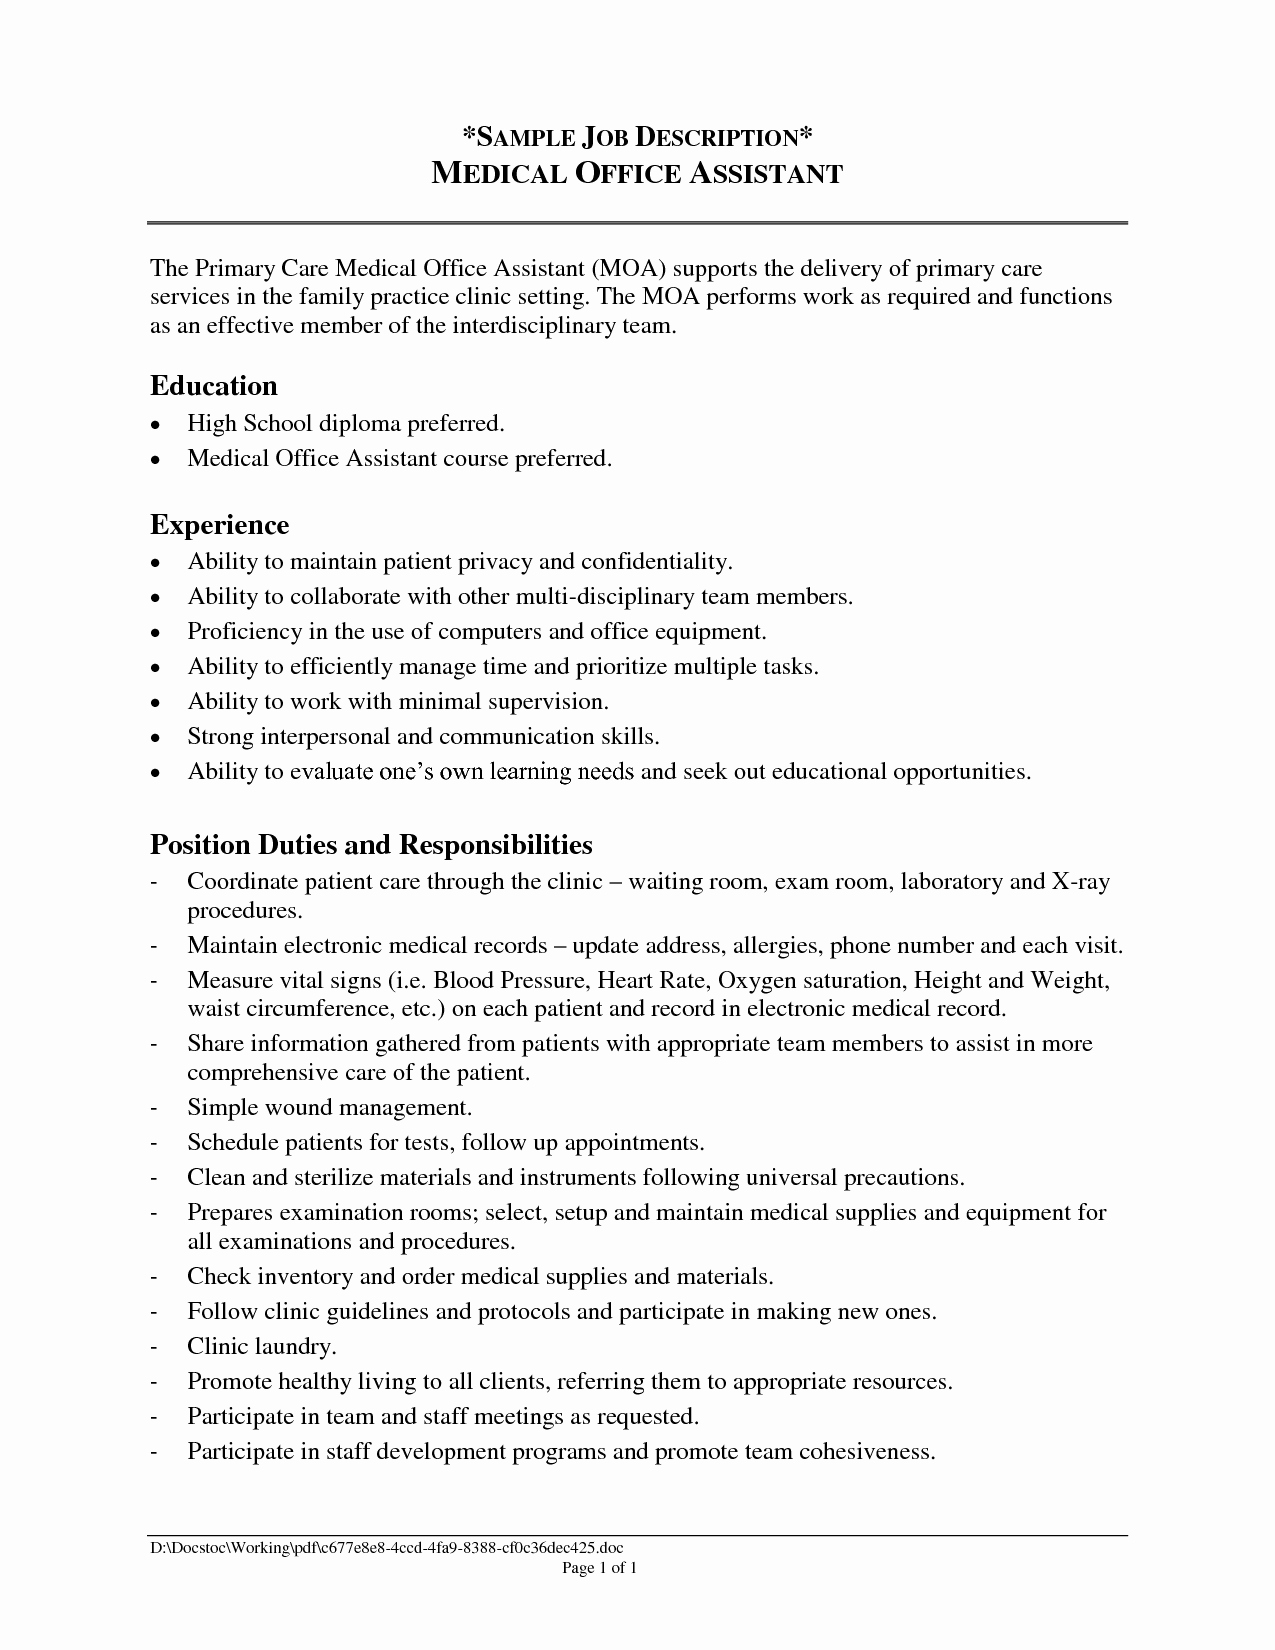 Fice assistant Job Description Resume 2016